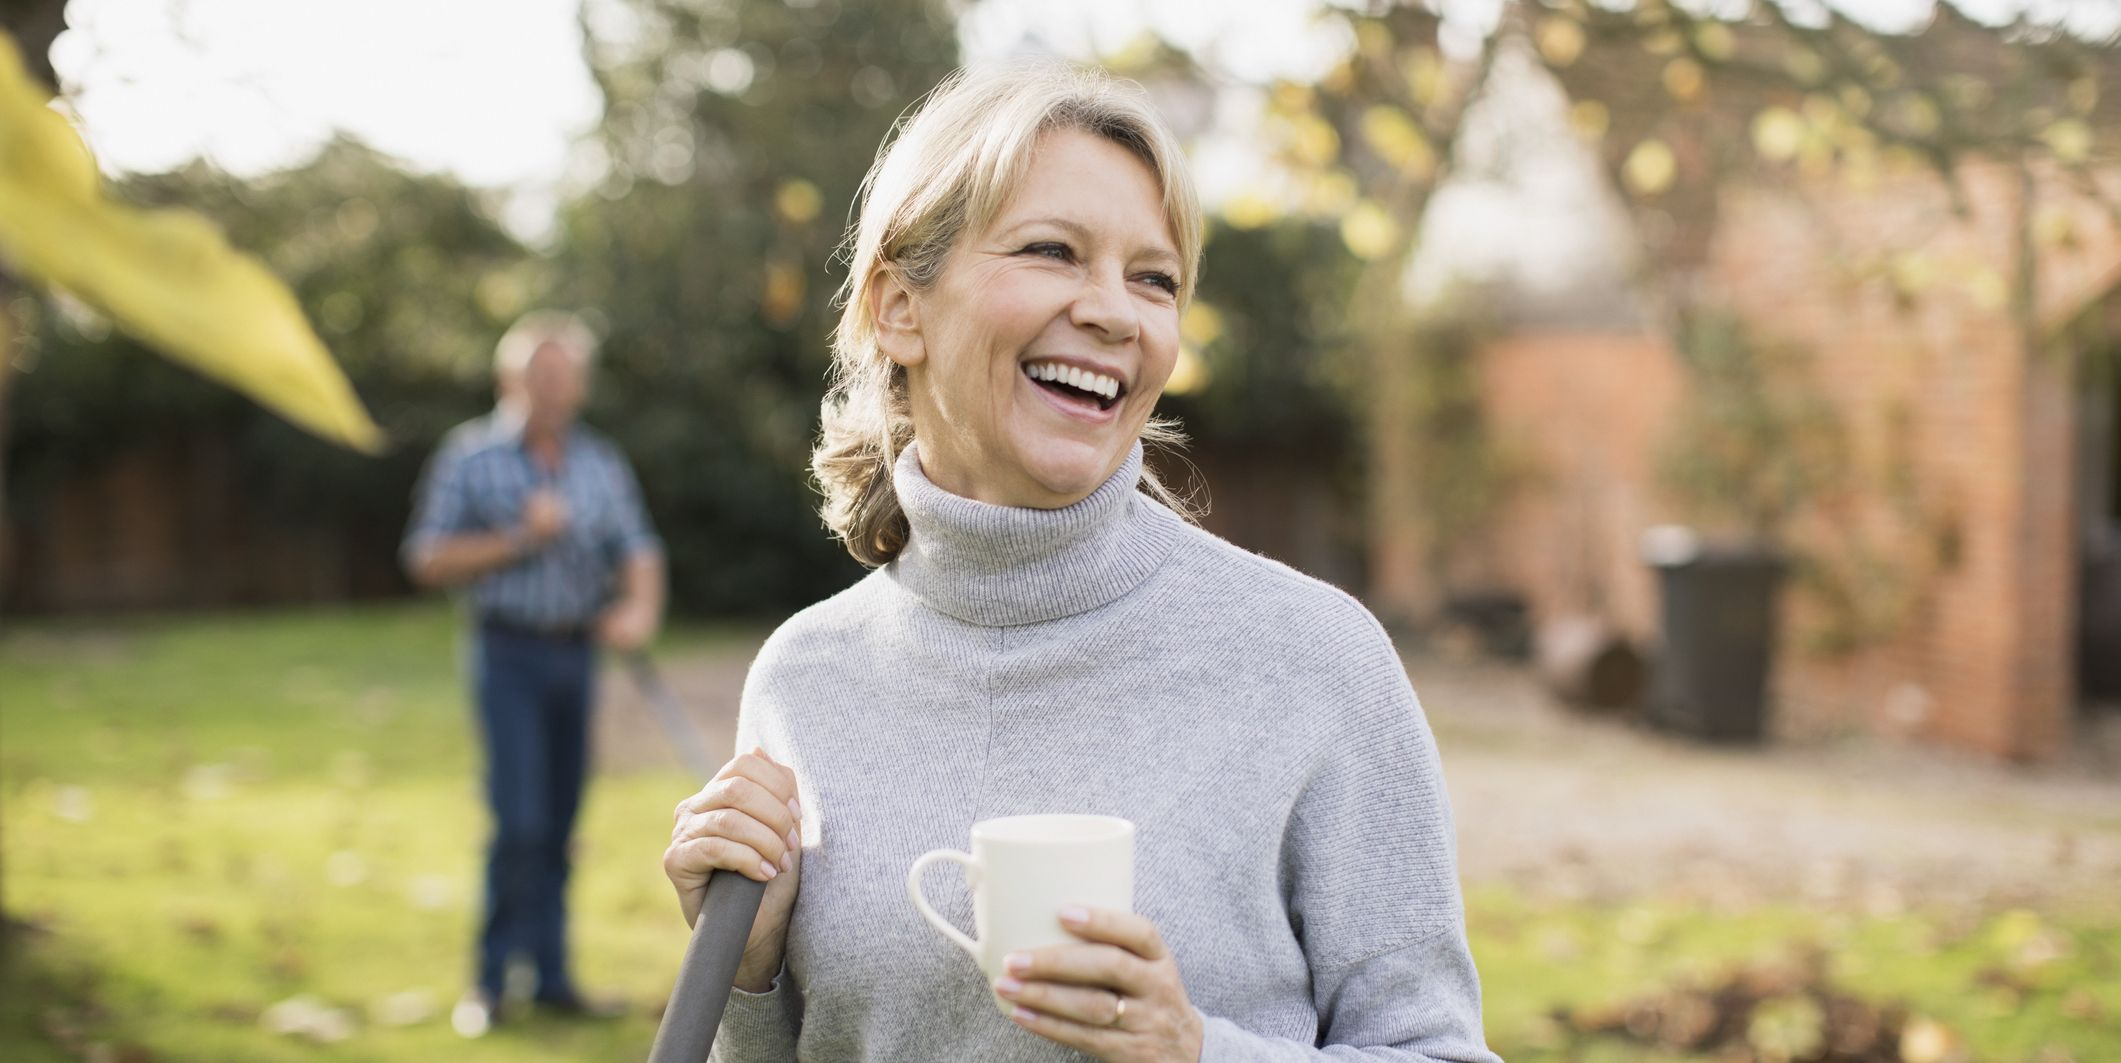 10 Things Every Woman Can Do to Age Gracefully